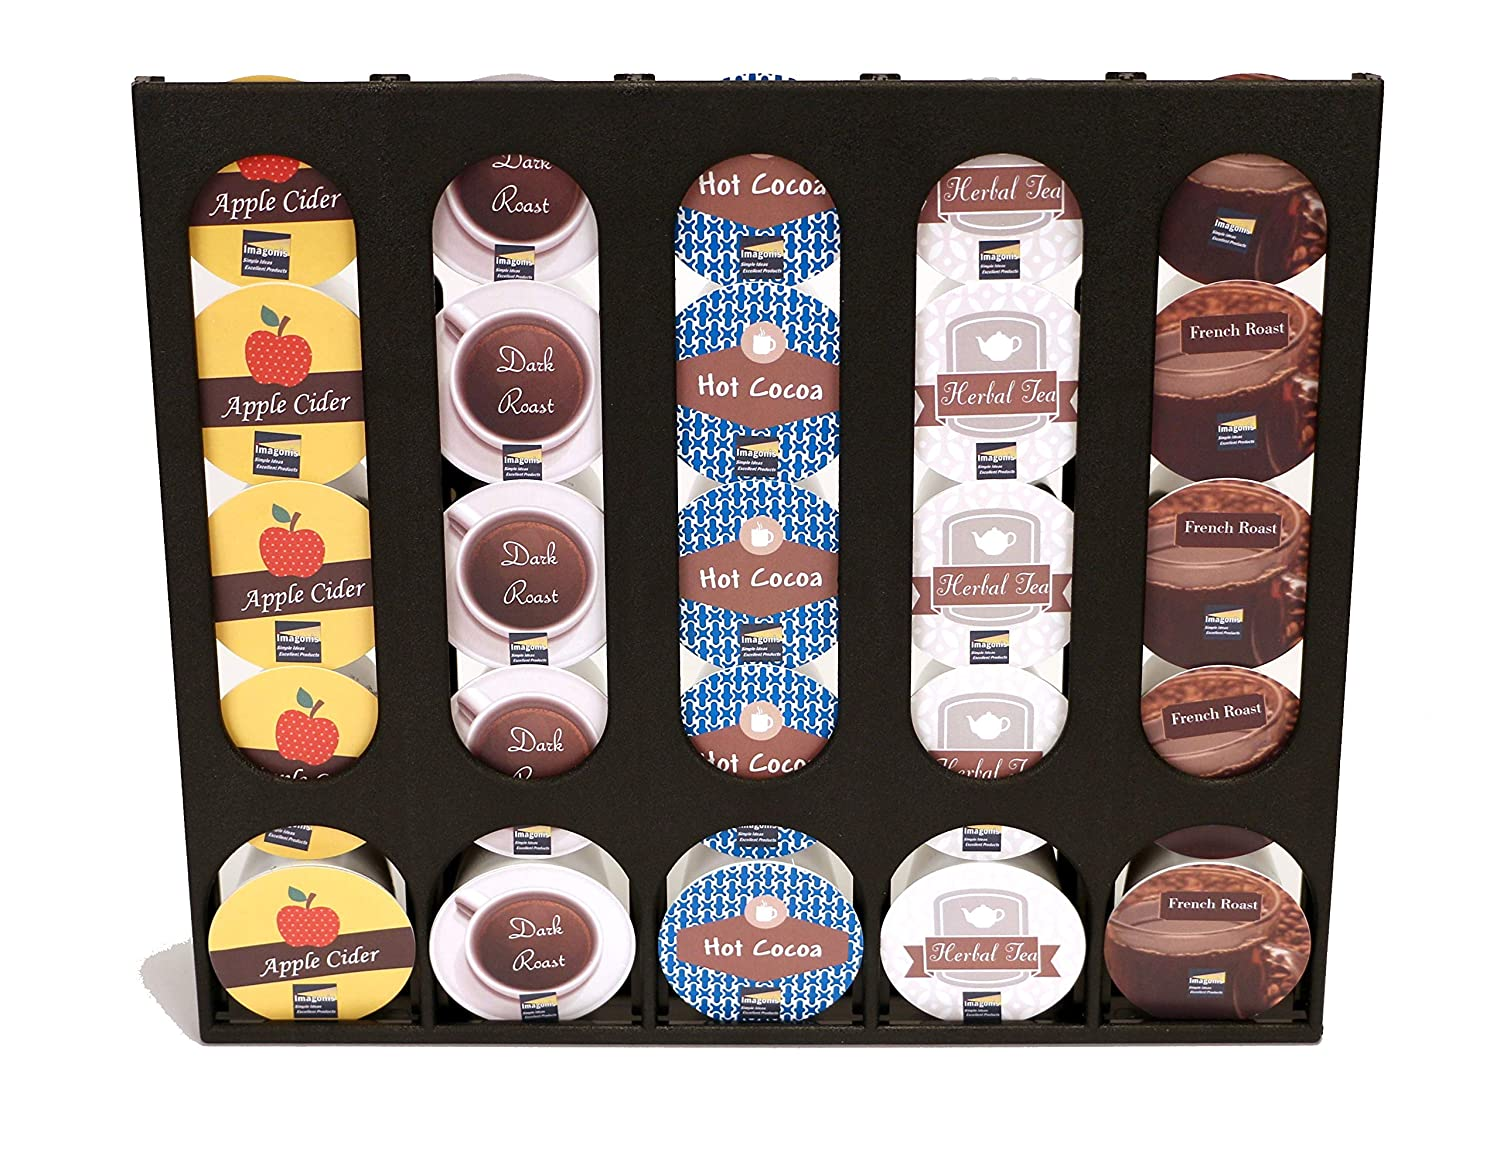 The Cupboard Caddy, Compatible with Keurig K-cups, Premium Storage Dispenser, Holder & Stand (Now with a new and improved magnetic release system)